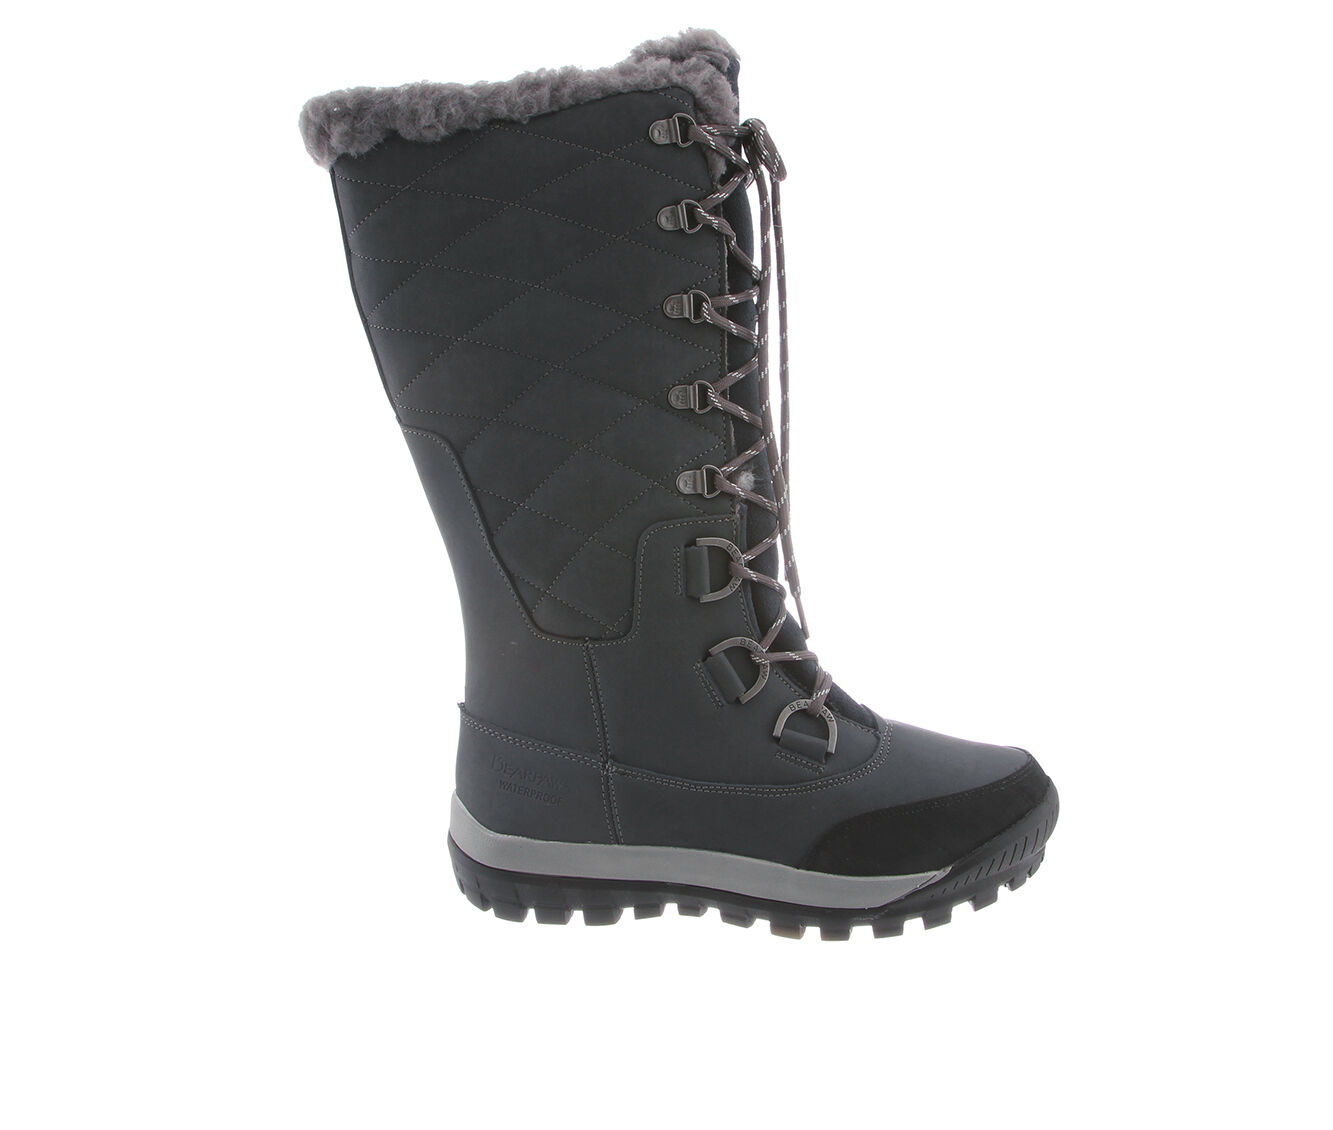 Women's Bearpaw Isabella Winter Boots Charcoal